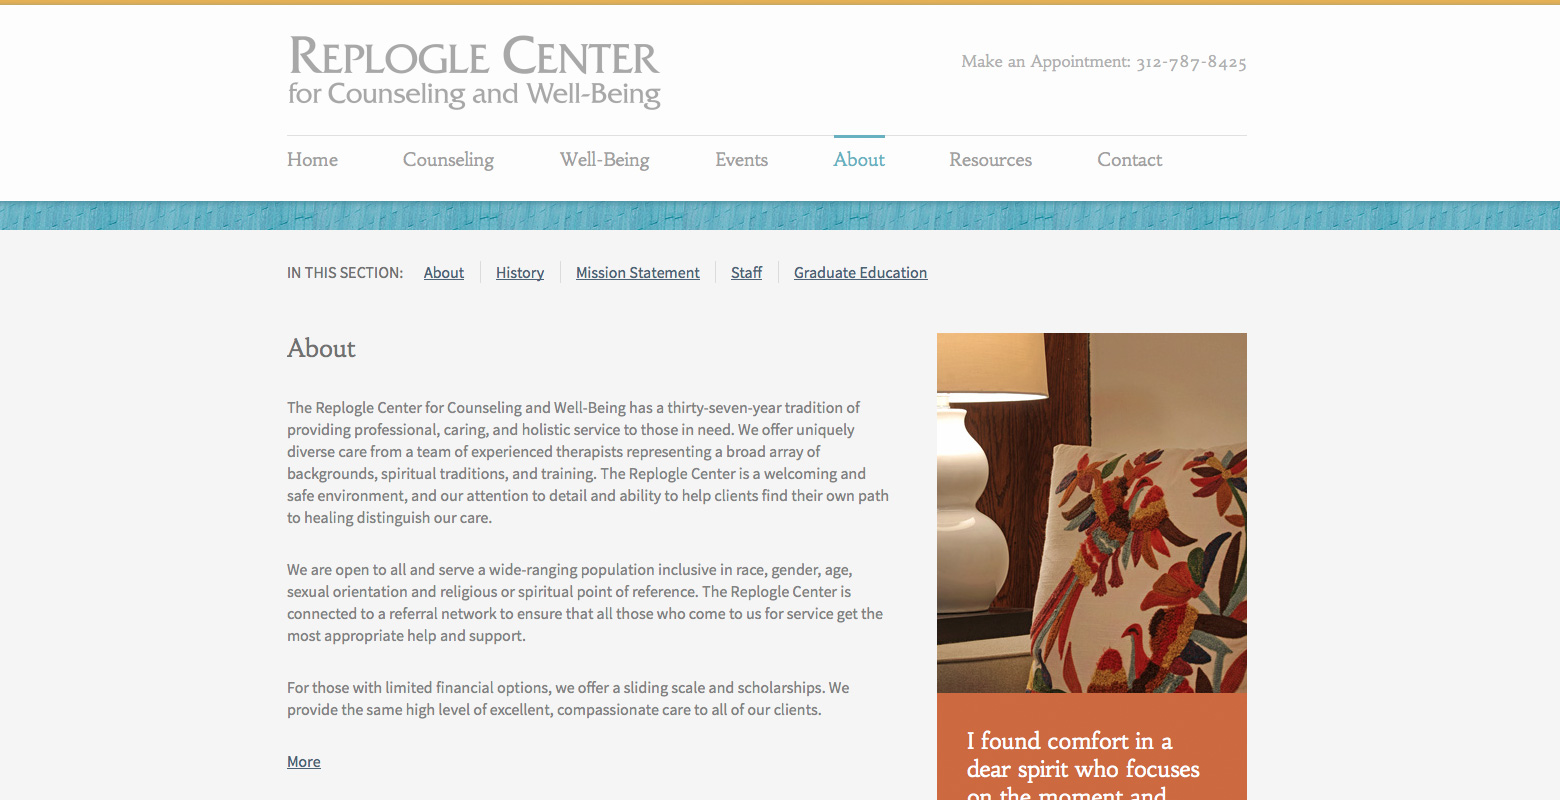 Replogle Center for Counseling and Well-Being